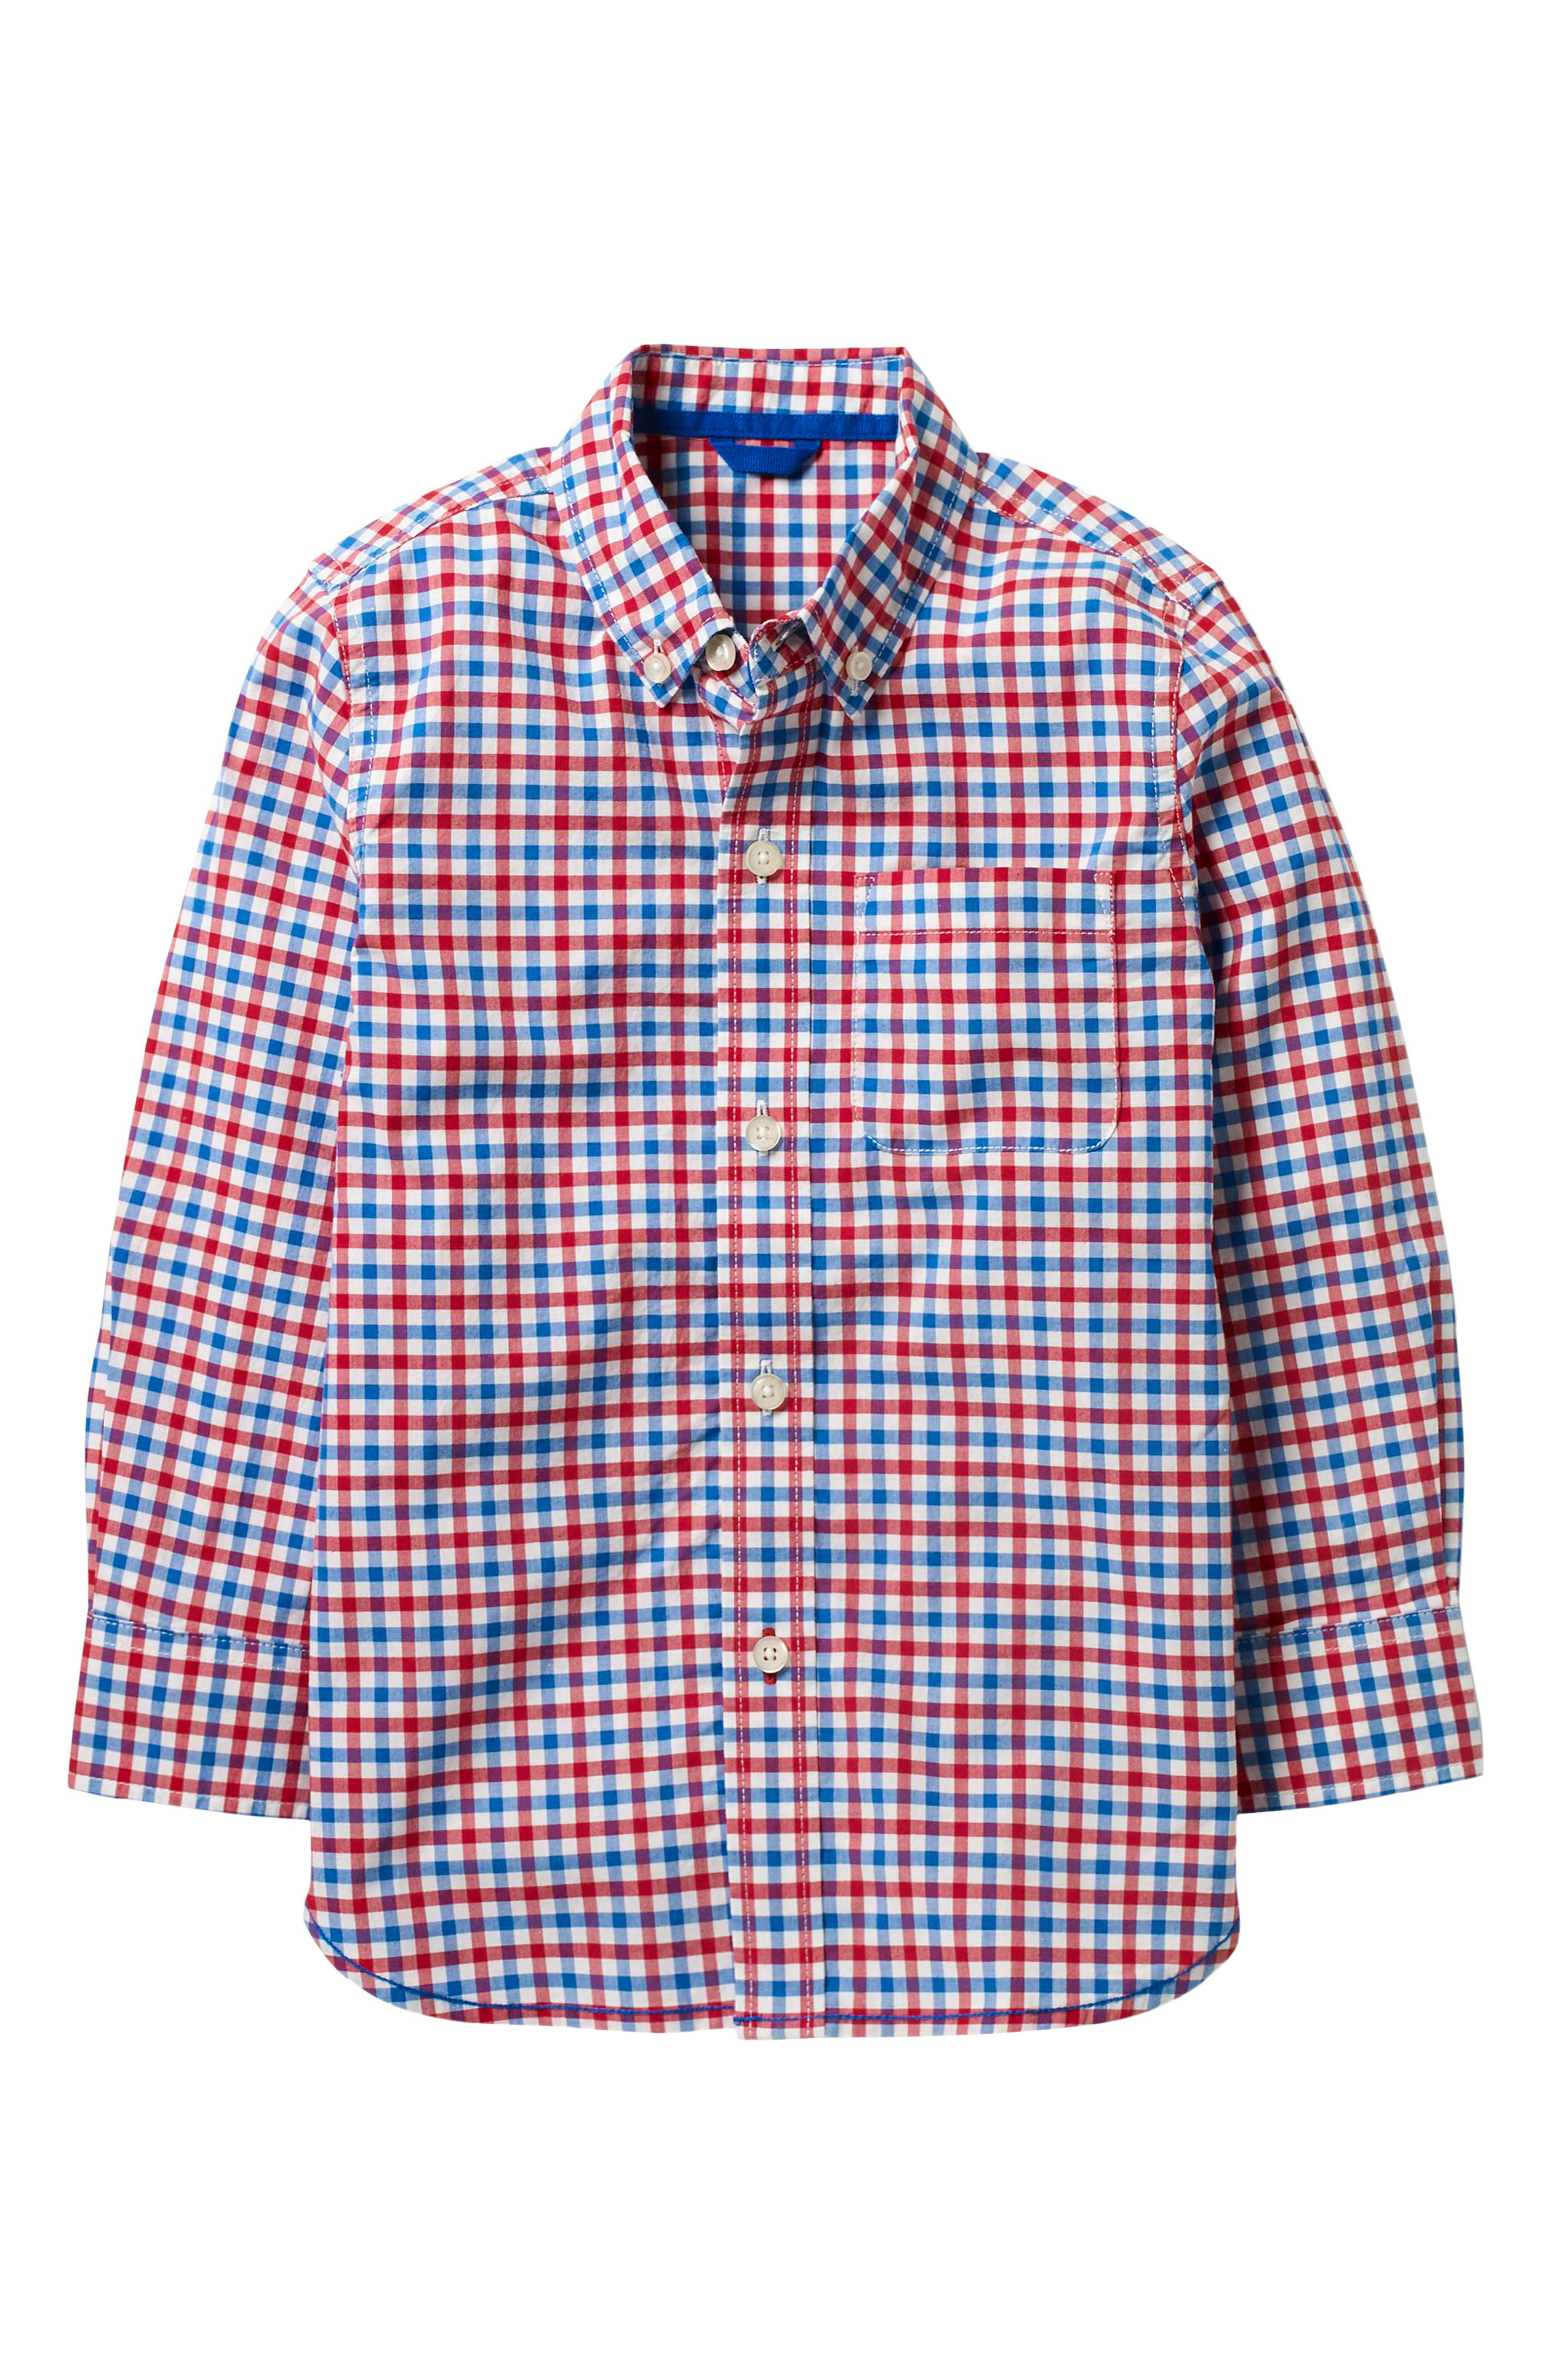 Laundered Gingham Woven Shirt,                         Main,                         color, Soft Red/ Blue Multi-Gingham